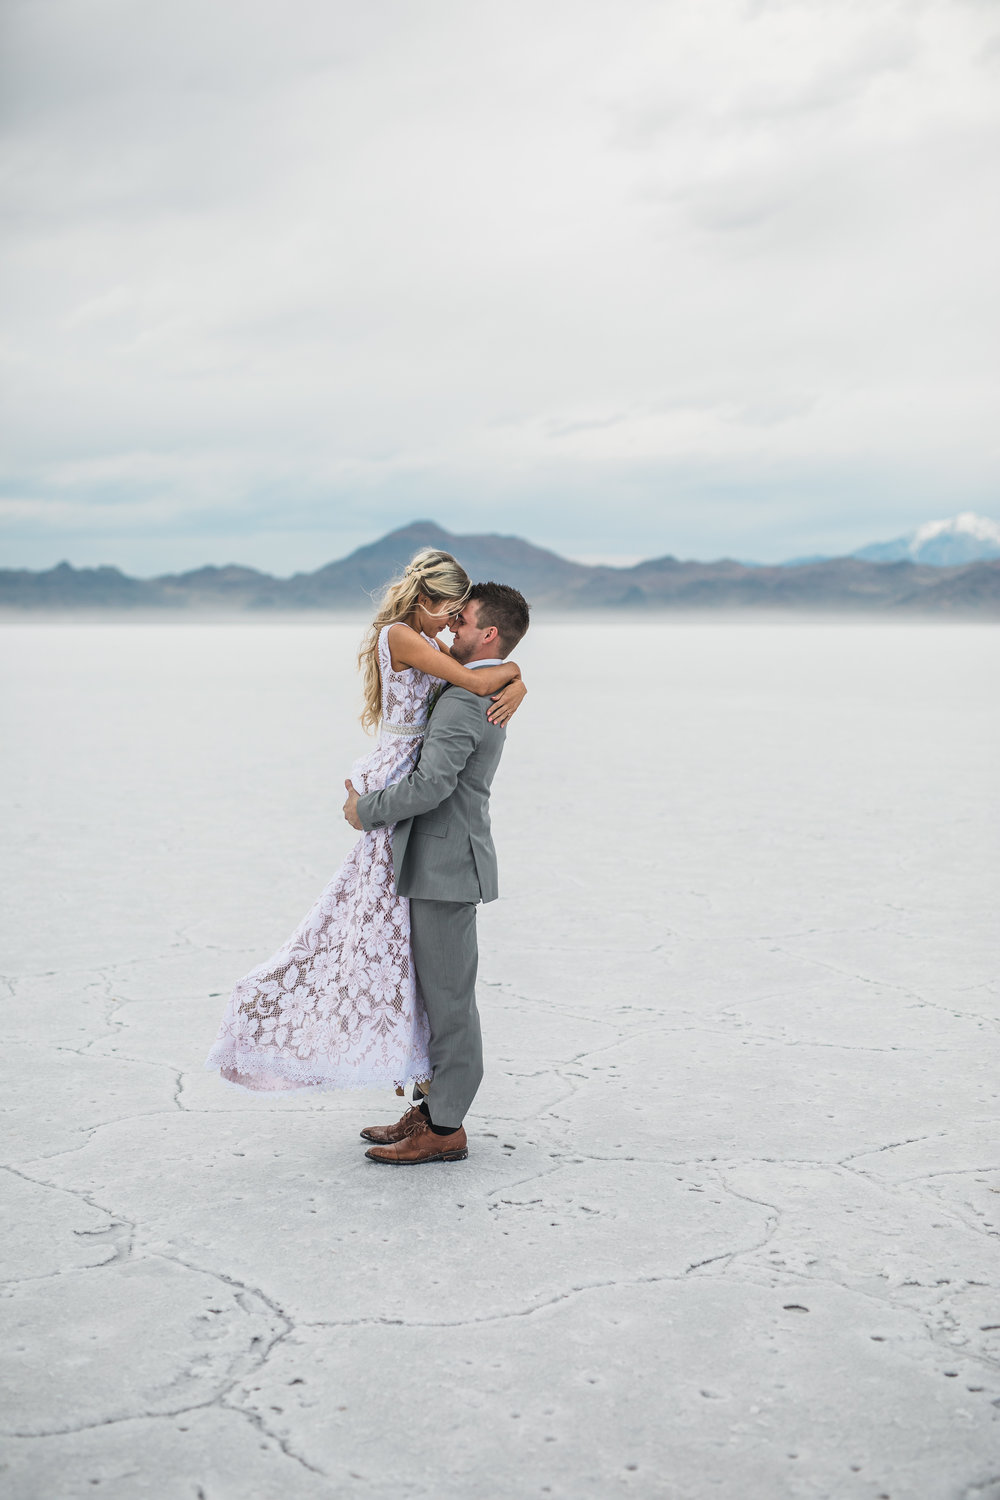 Bonneville Salt Flats adventure wedding husband and wife team